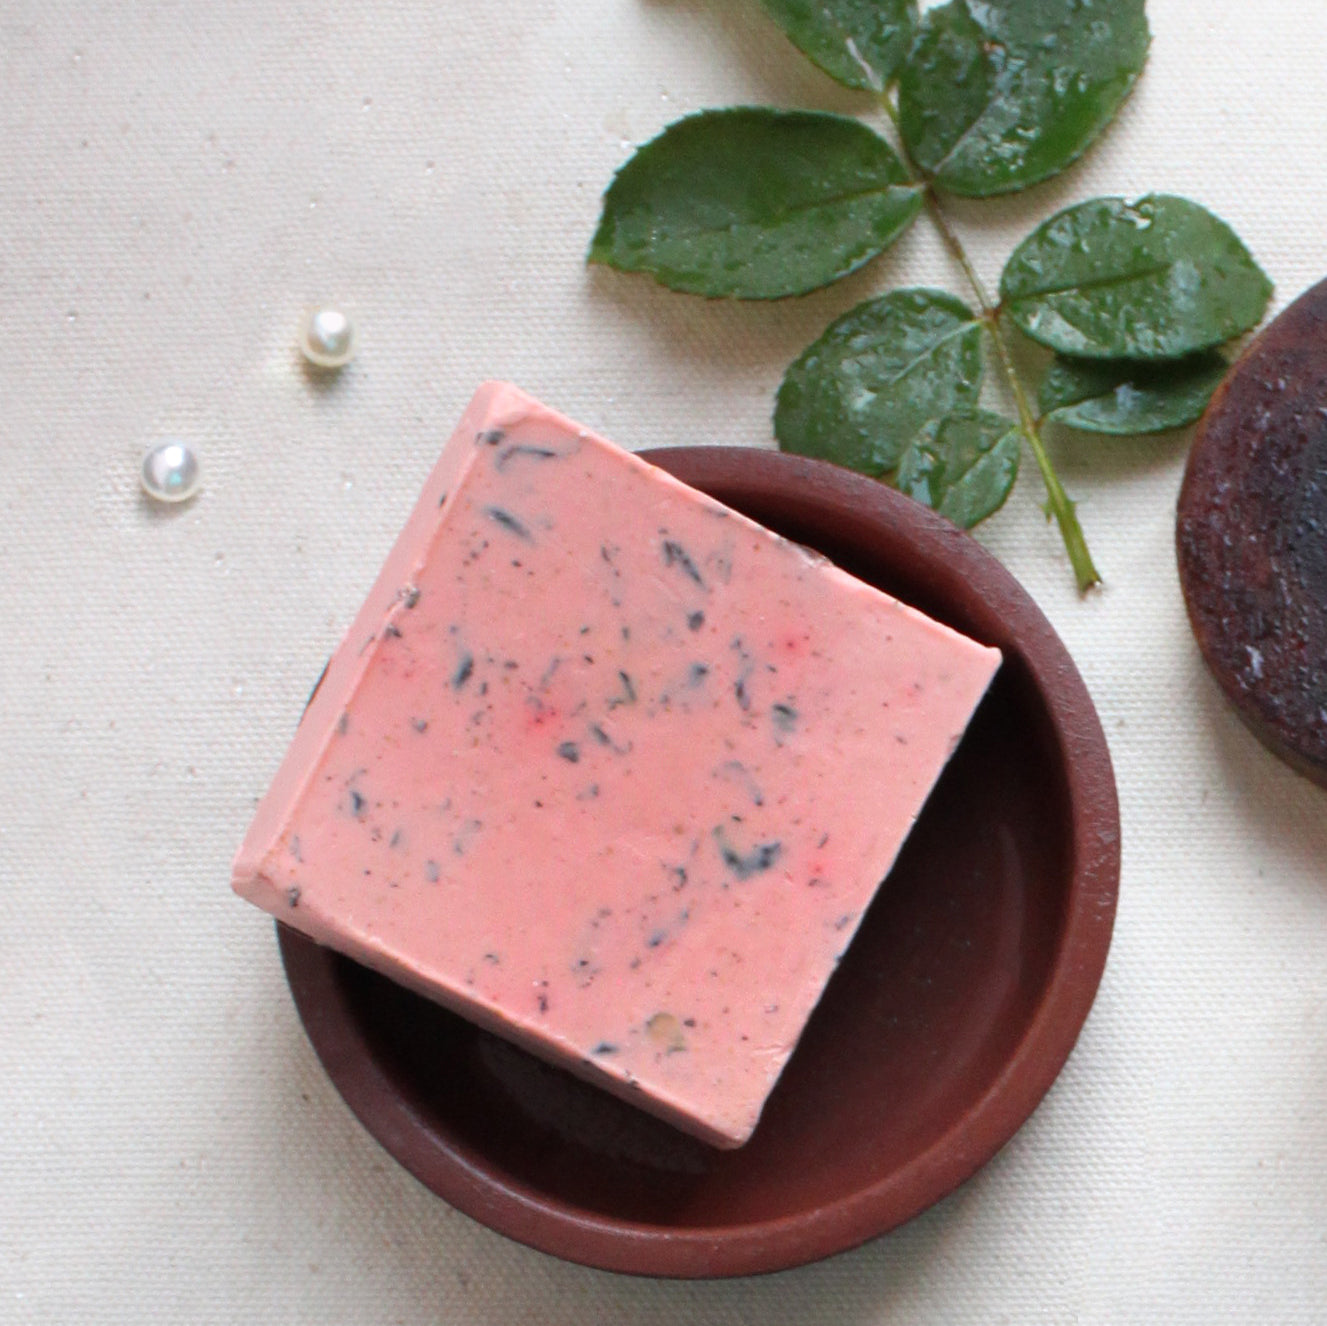 Rose Milk handmade soap